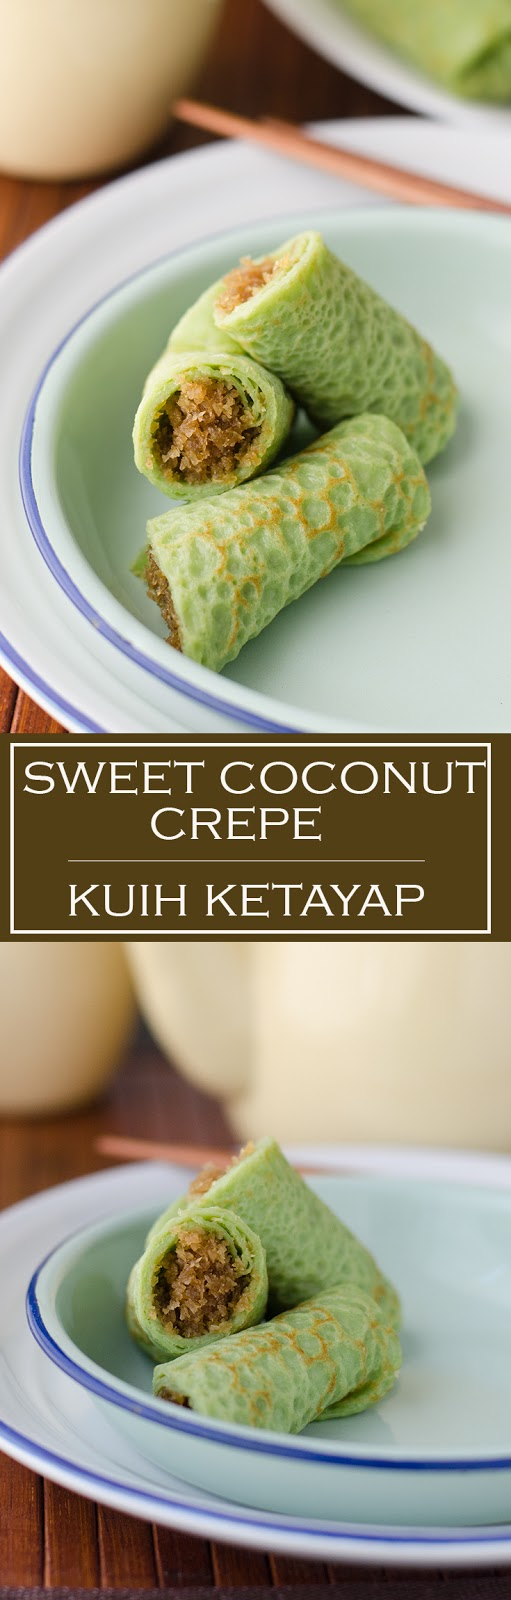 Malaysian Pandan sweet coconut crepe photo